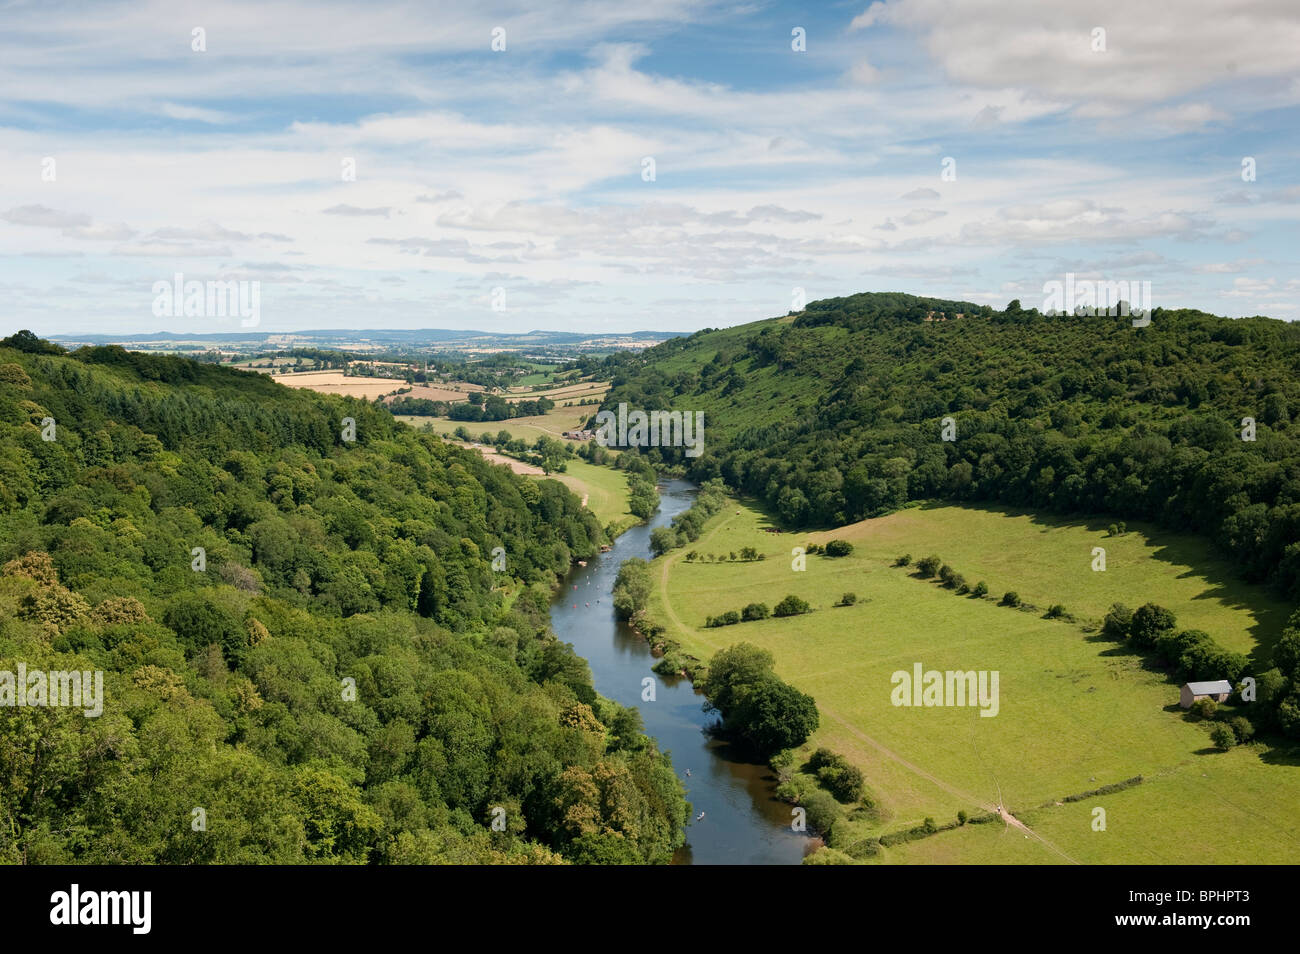 View of the river wye, from Symons Yat rock, in the wye valley, Forest of Dean. Rowers can be seen on the river. - Stock Image